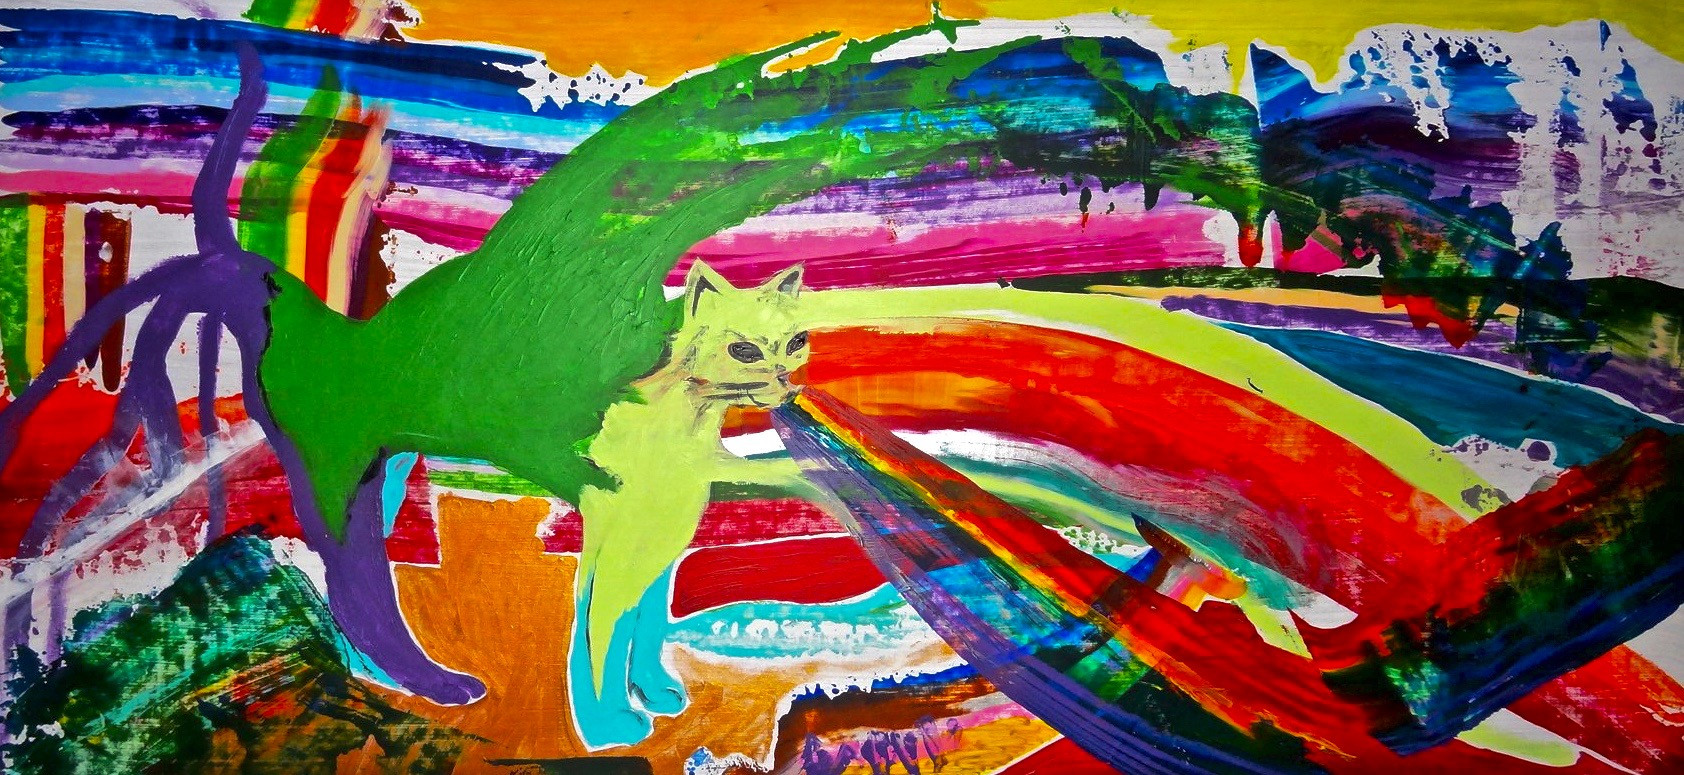 Bright Side of The Cat. Mixed Media on W